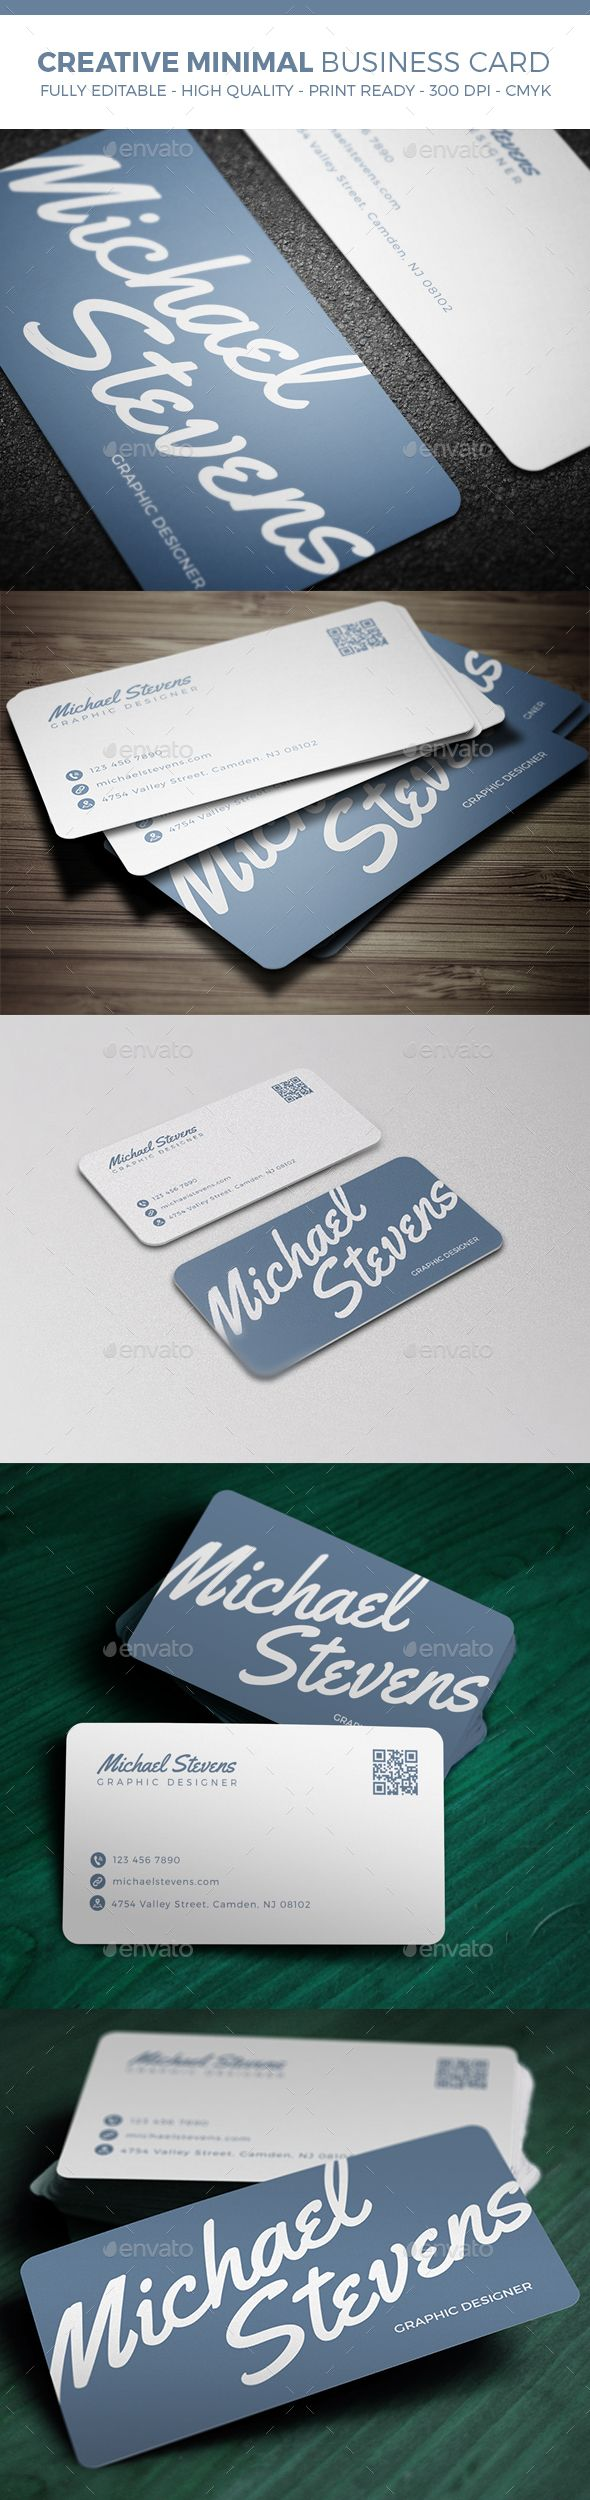 Creative Minimal Business Card — Photoshop PSD #clean #high quality • Available here → https://graphicriver.net/item/creative-minimal-business-card/16768305?ref=pxcr